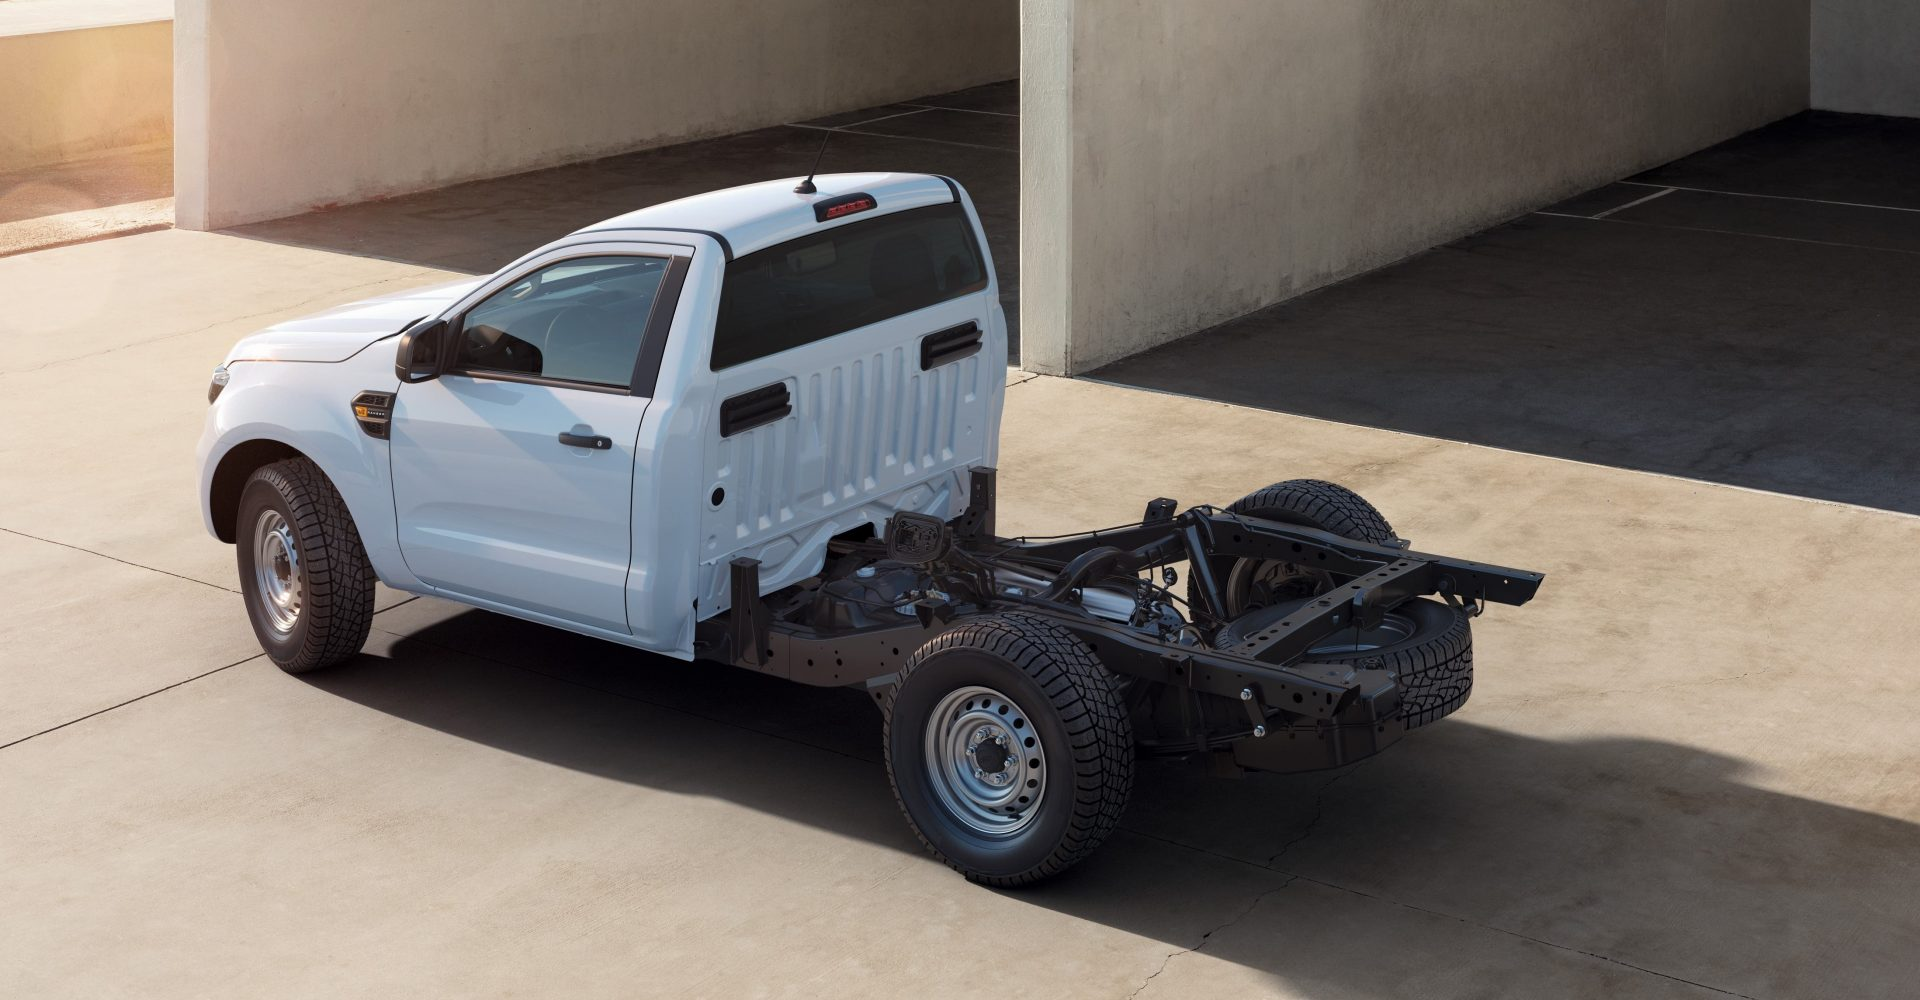 New chassis-cab variant added to Ford Ranger line-up